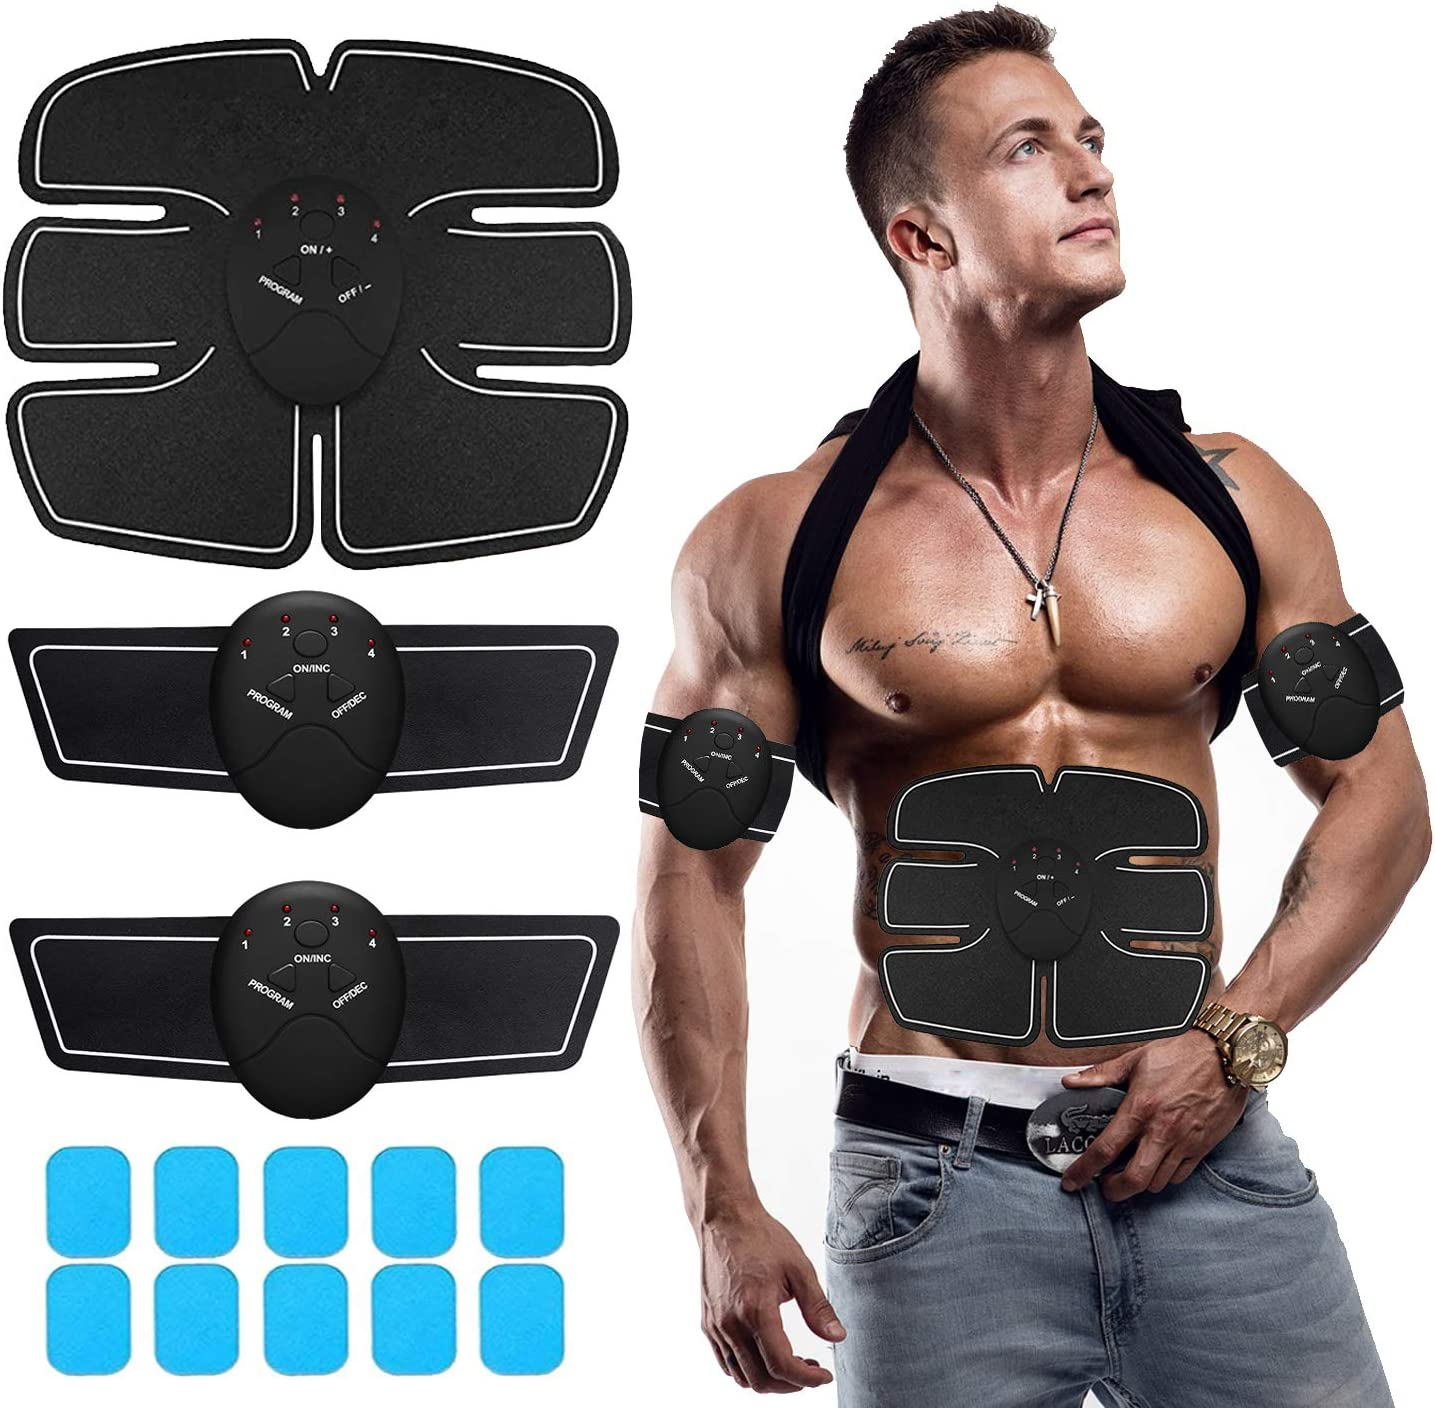 BlueWish Abs Stimulating Belt- Abdominal Toner-Training Device for Muscles- Wireless Portable to-Go Gym Device- Muscle Sculpting at Home - Fitness Equipment for at -Home Workouts